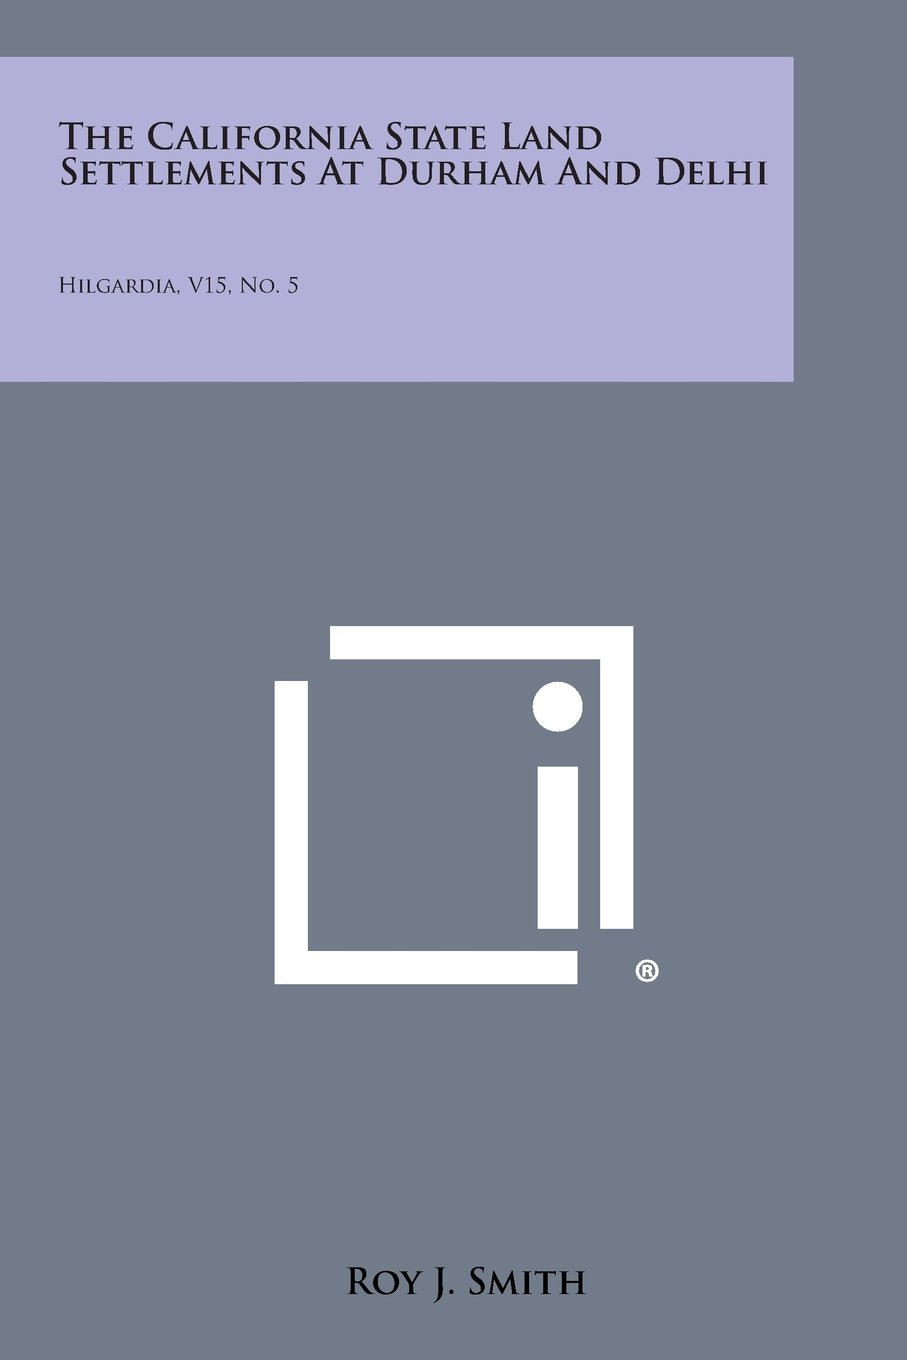 Read Online The California State Land Settlements at Durham and Delhi: Hilgardia, V15, No. 5 PDF